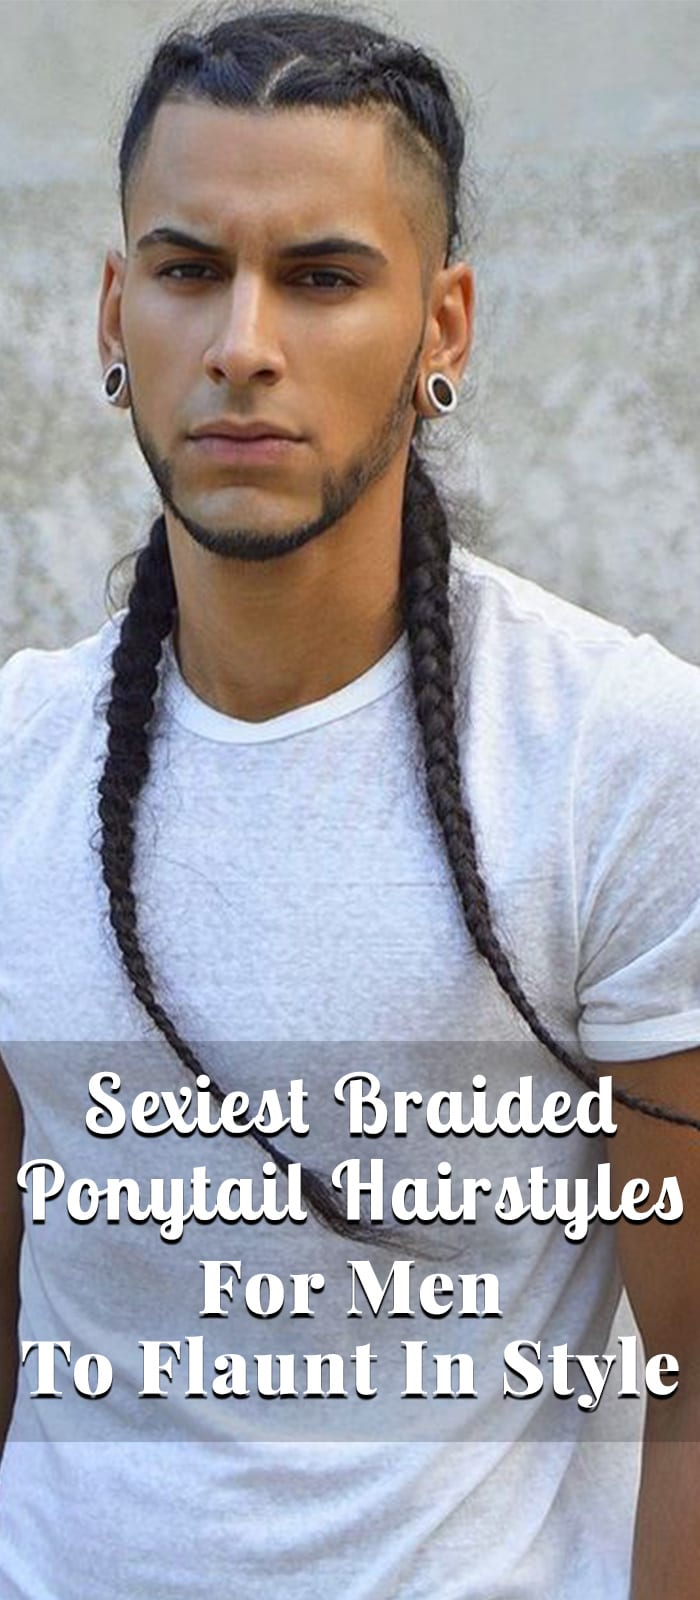 sexiest braided ponytail hairstyles for men to flaunt in